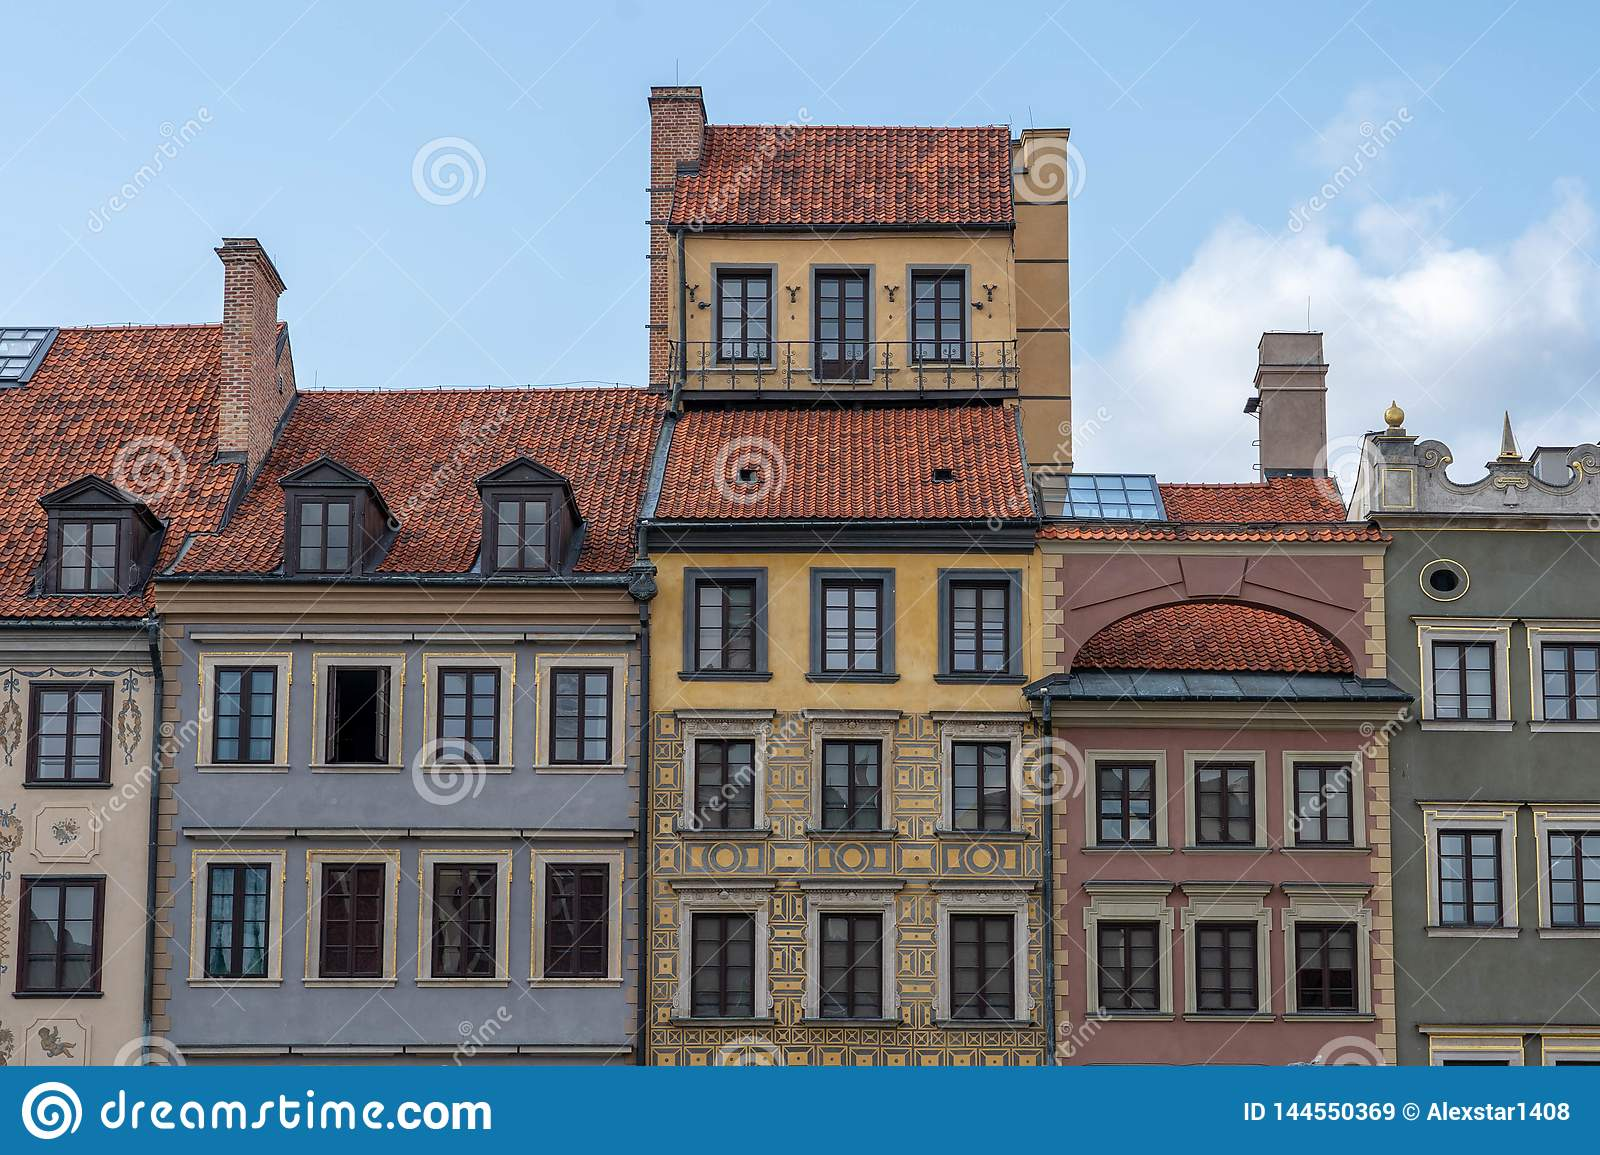 European Architecture. colorful buildings in the cloudy sky